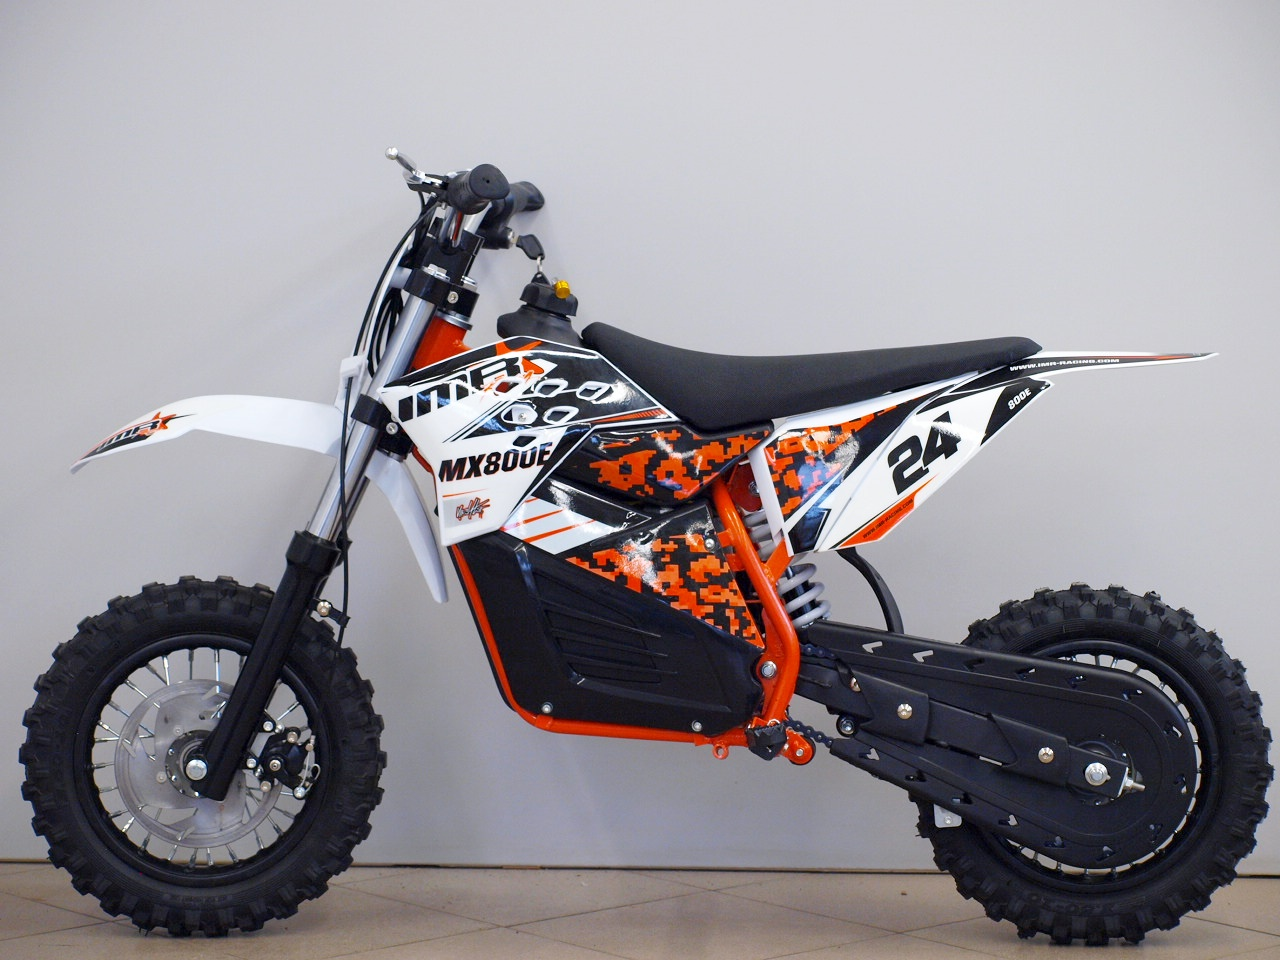 Electric mini dirt bike (motocross bike) MX800E 800W